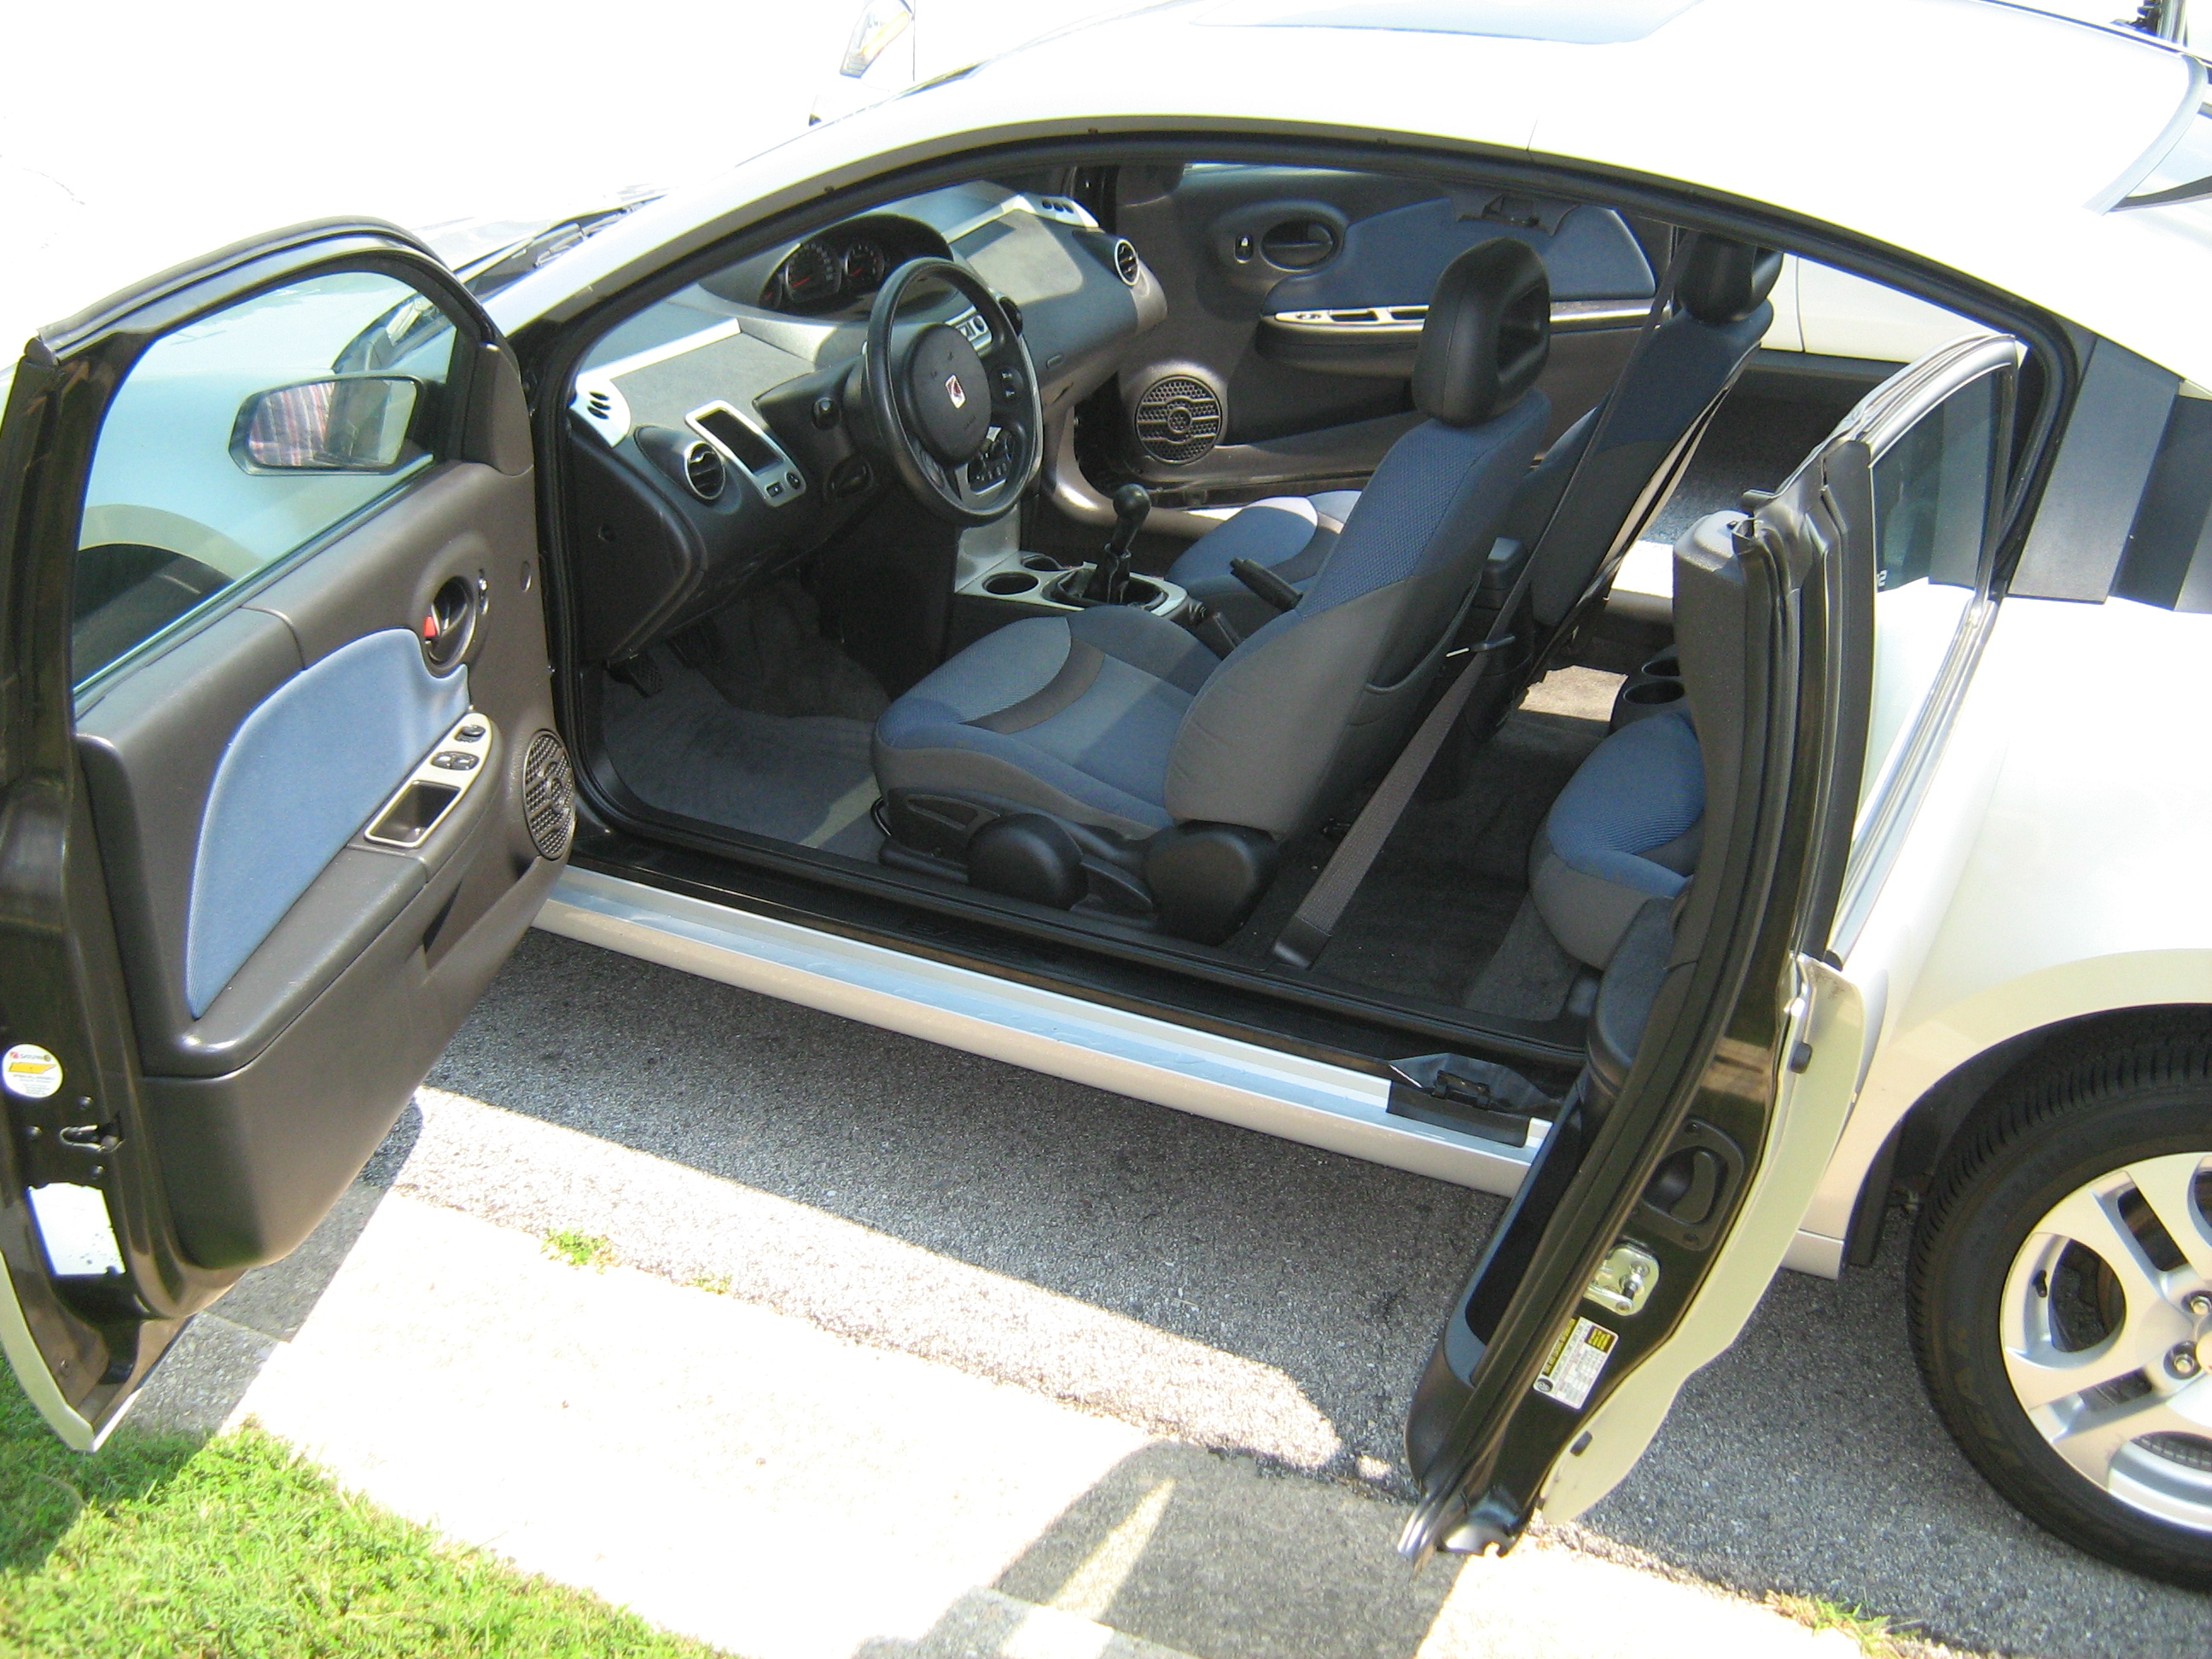 file saturn ion silver 4 door coupe doors jpg wikimedia commons rh commons wikimedia org